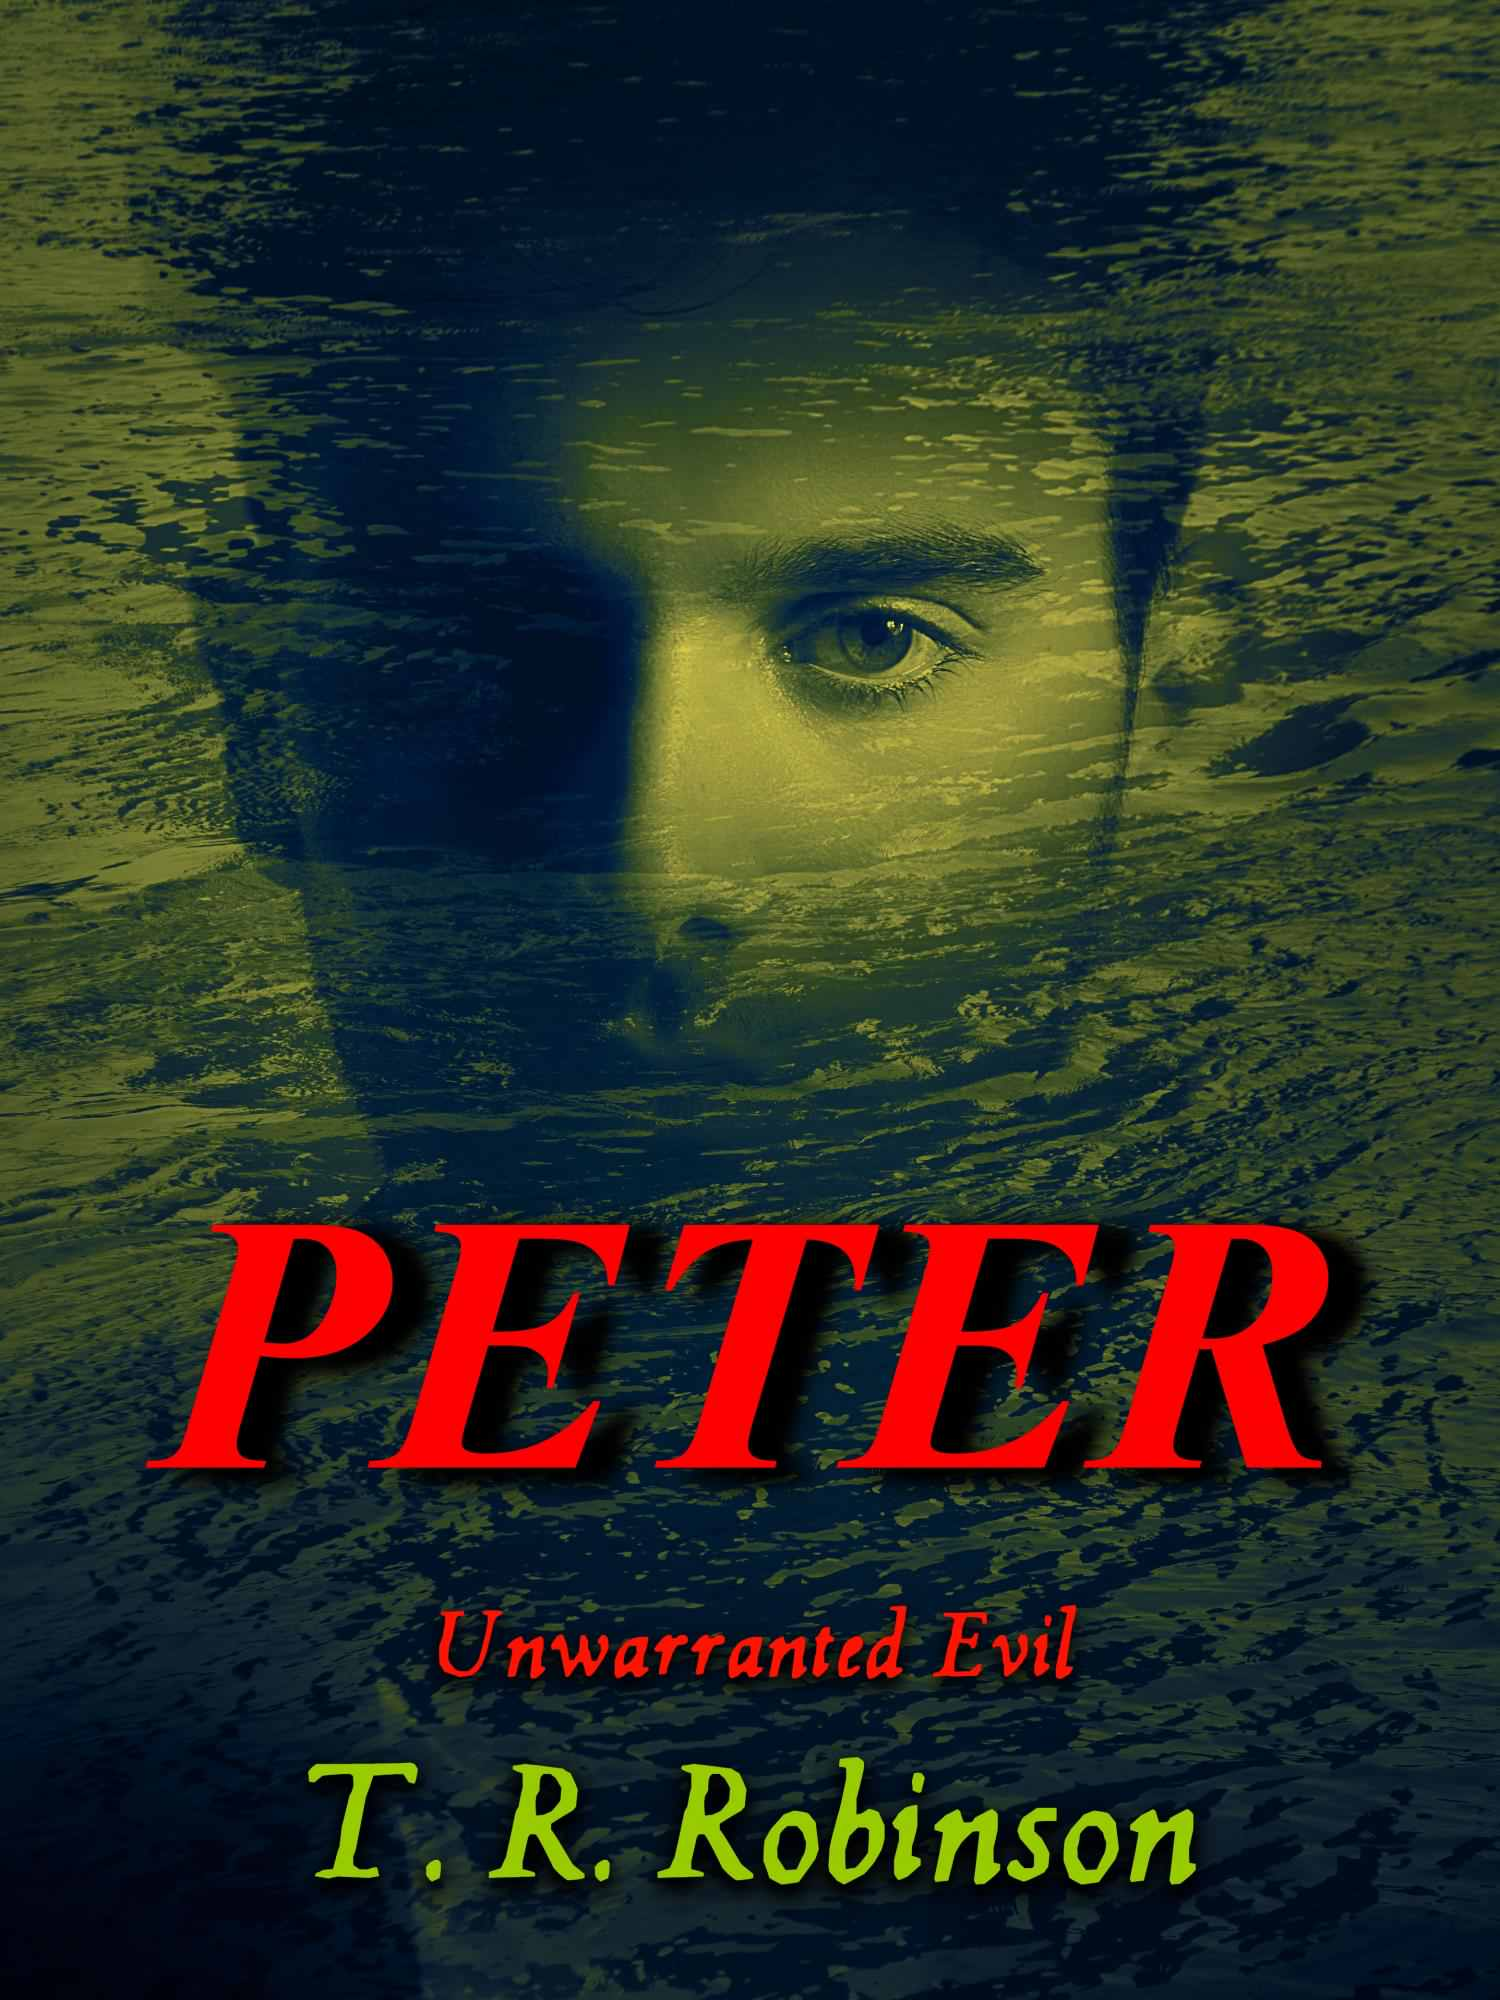 Peter by T. R. Robinson